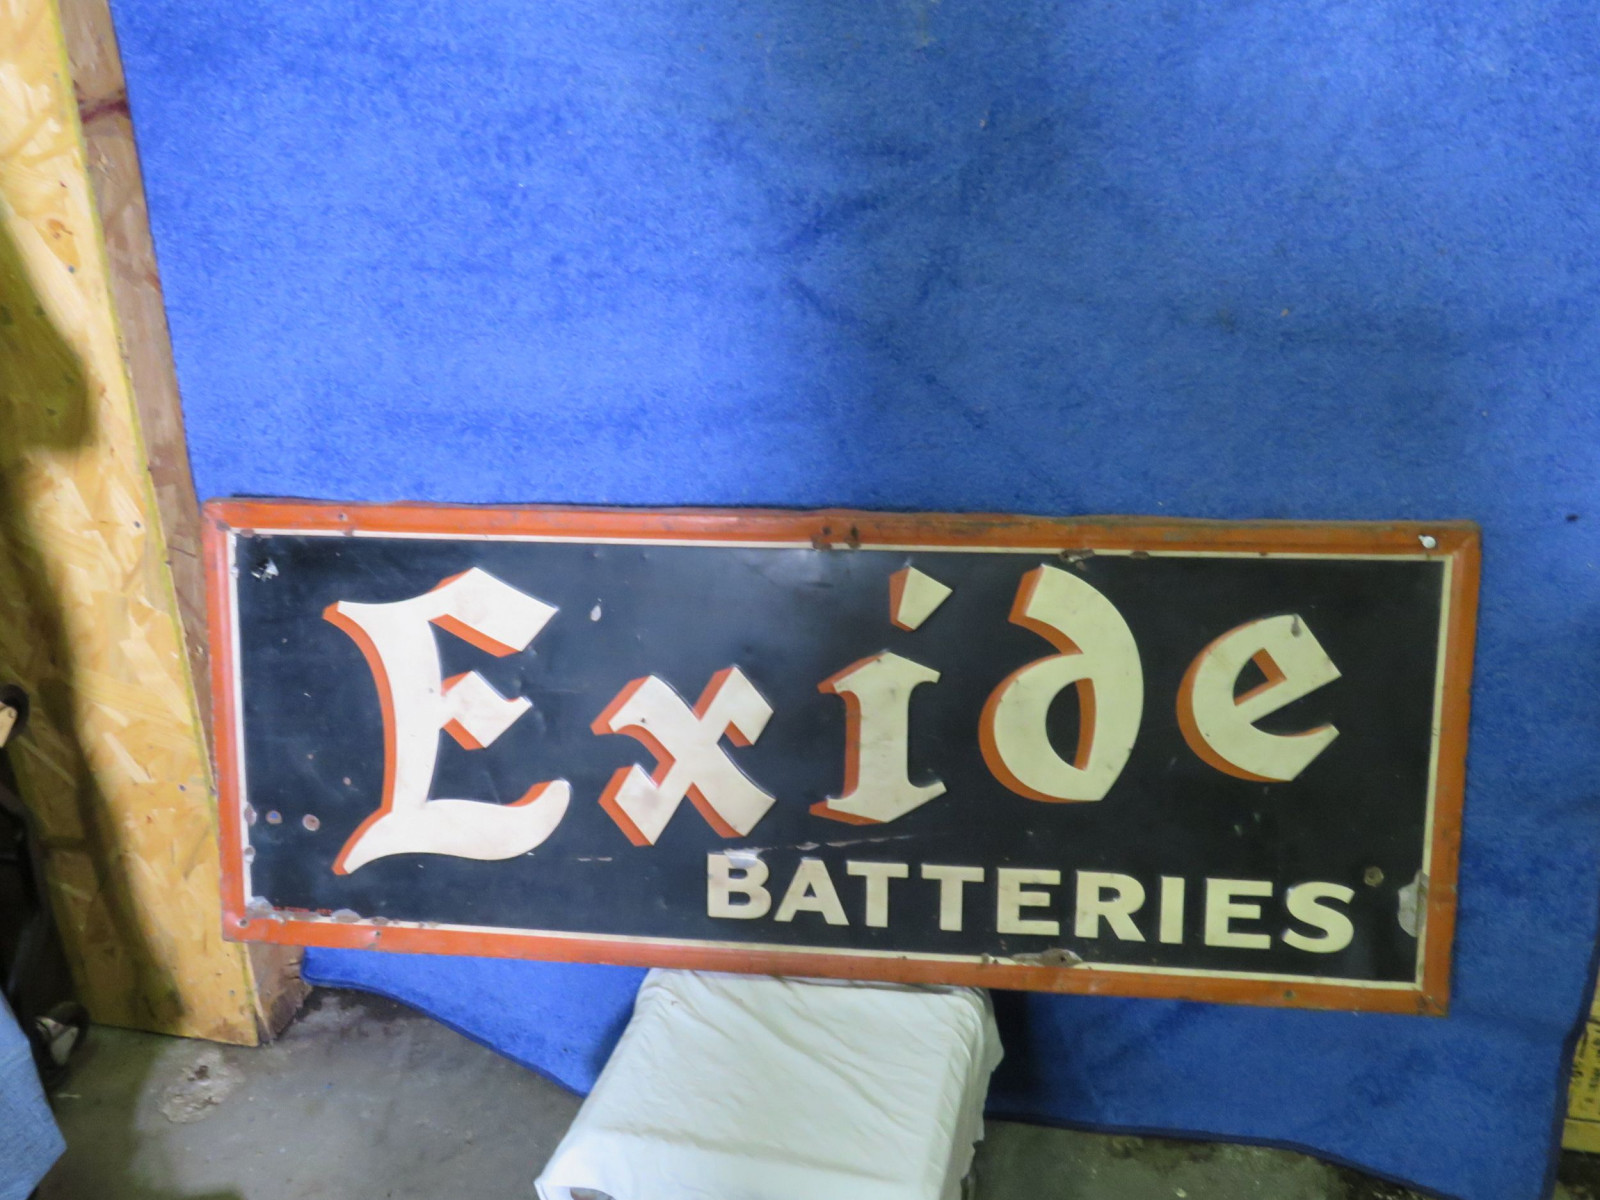 Excide BatteriesPainted Tin Sign - Image 2